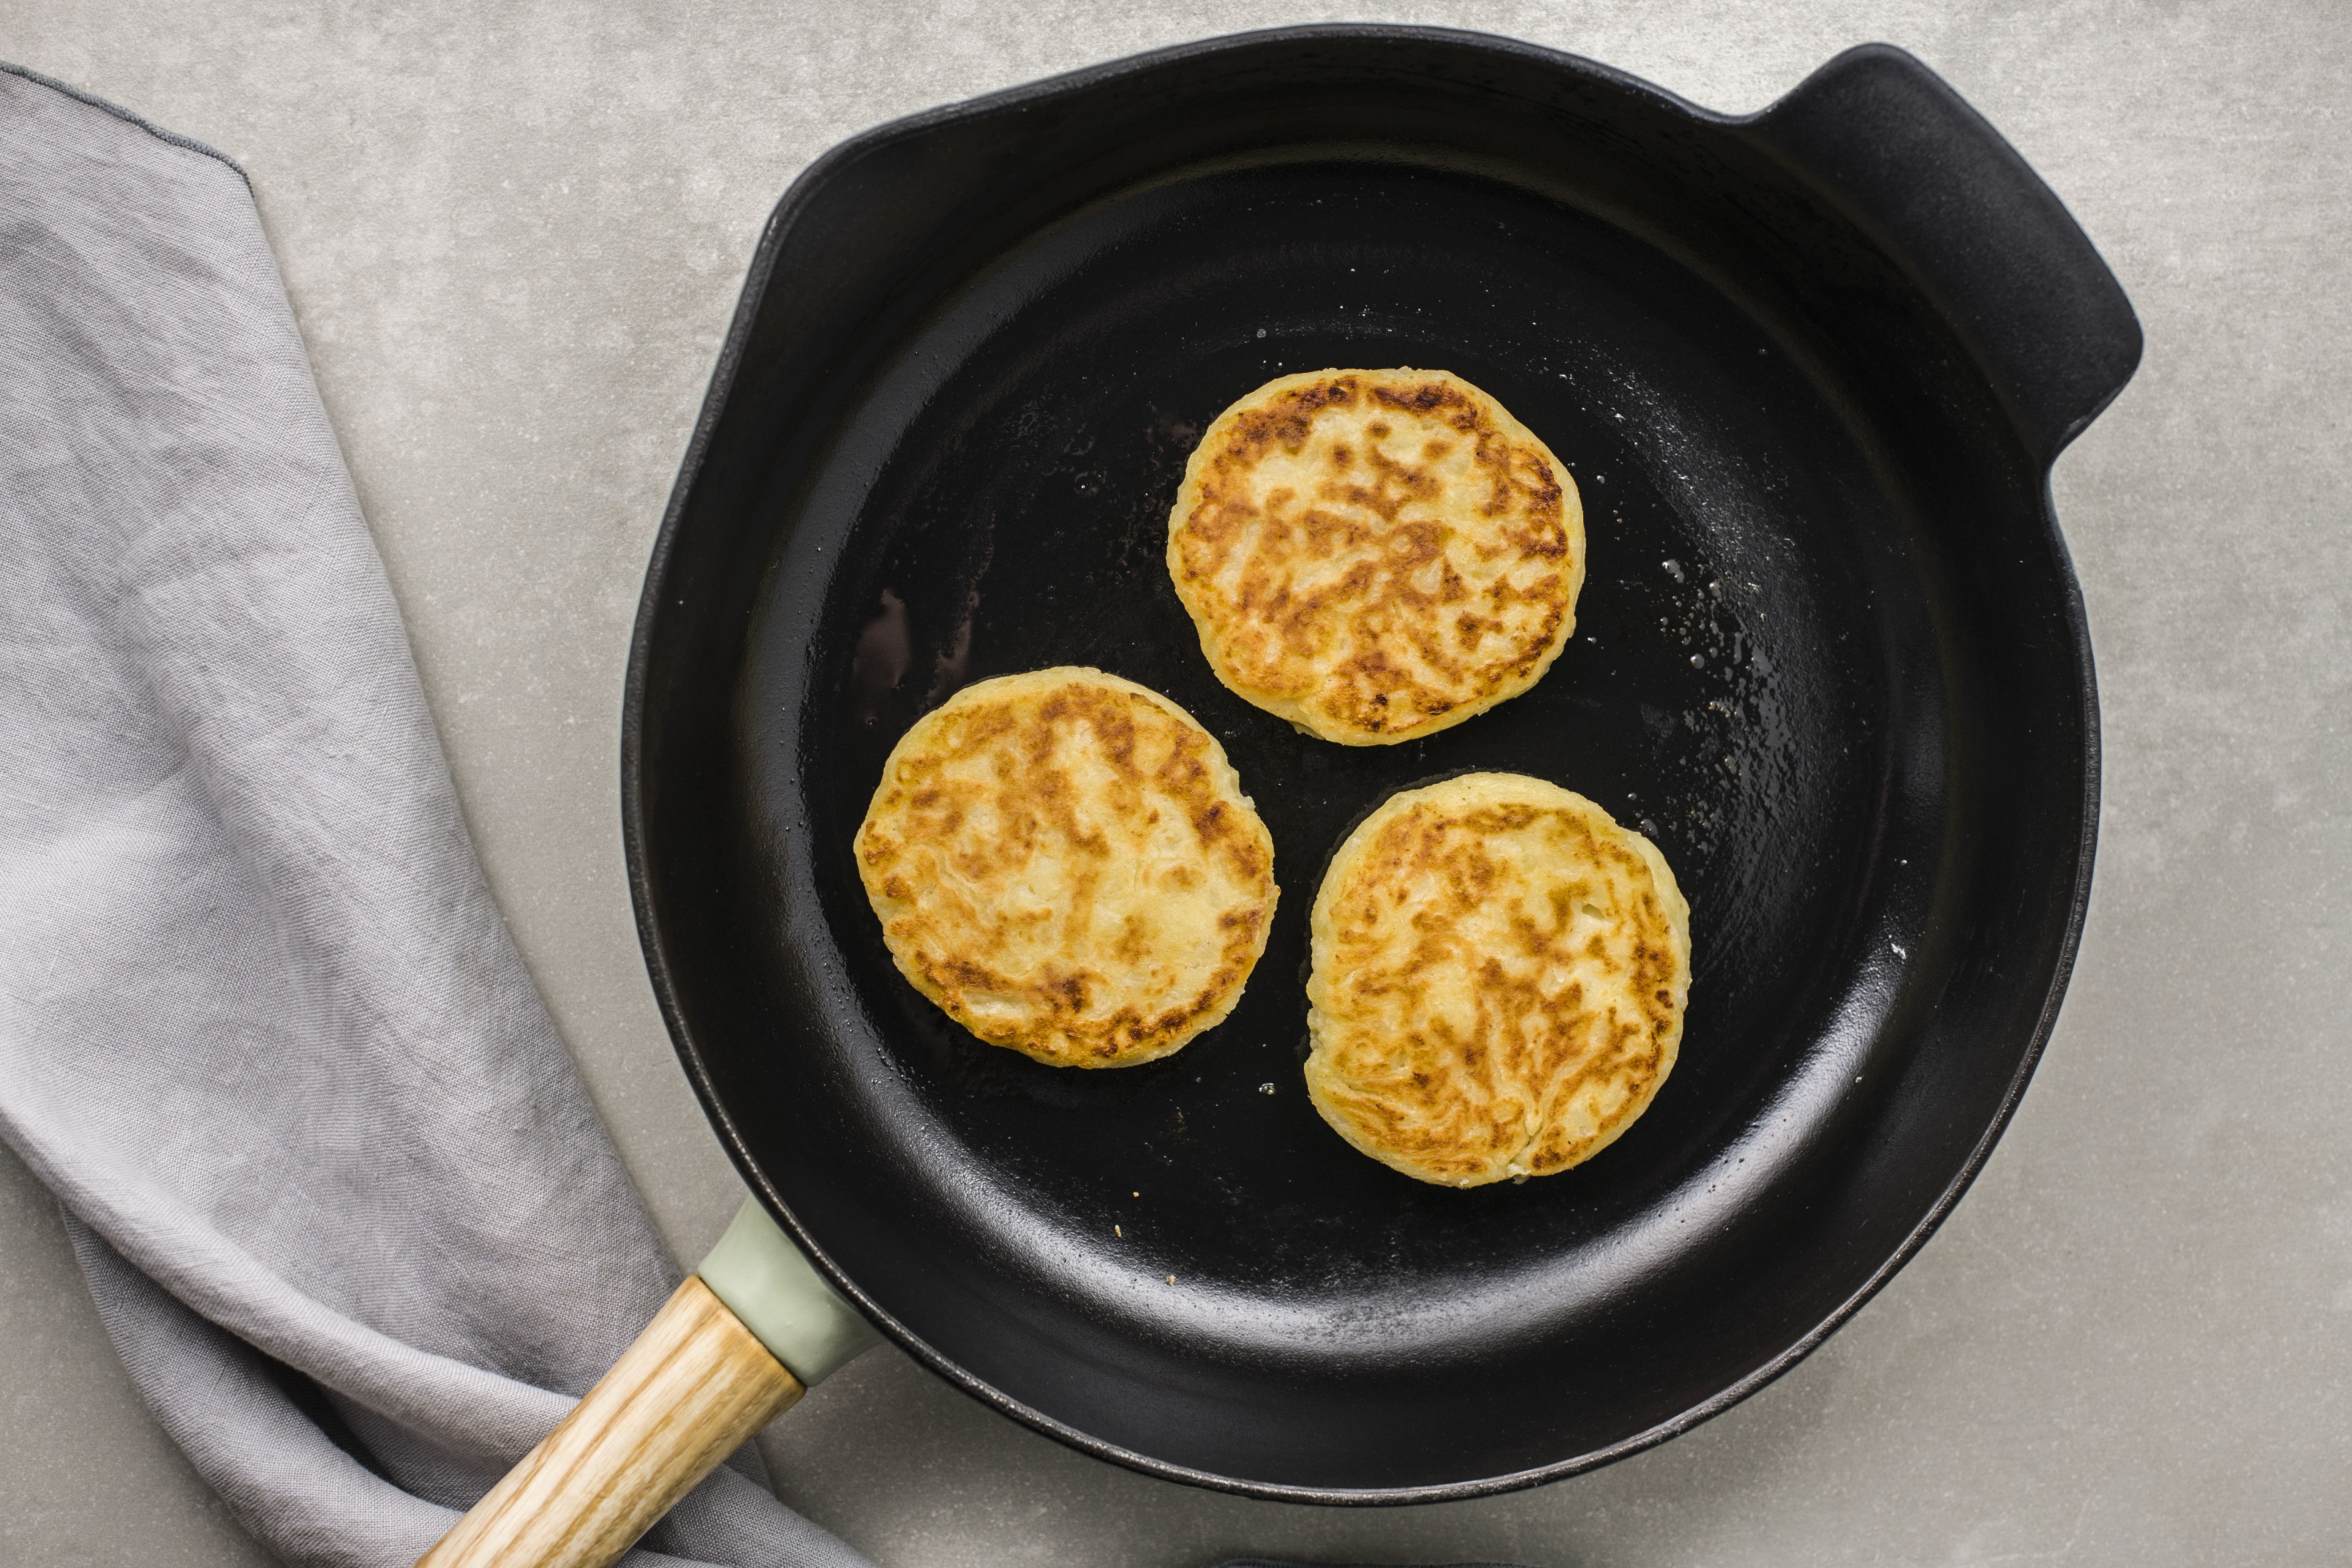 Potato patties cooked on one side in a skillet